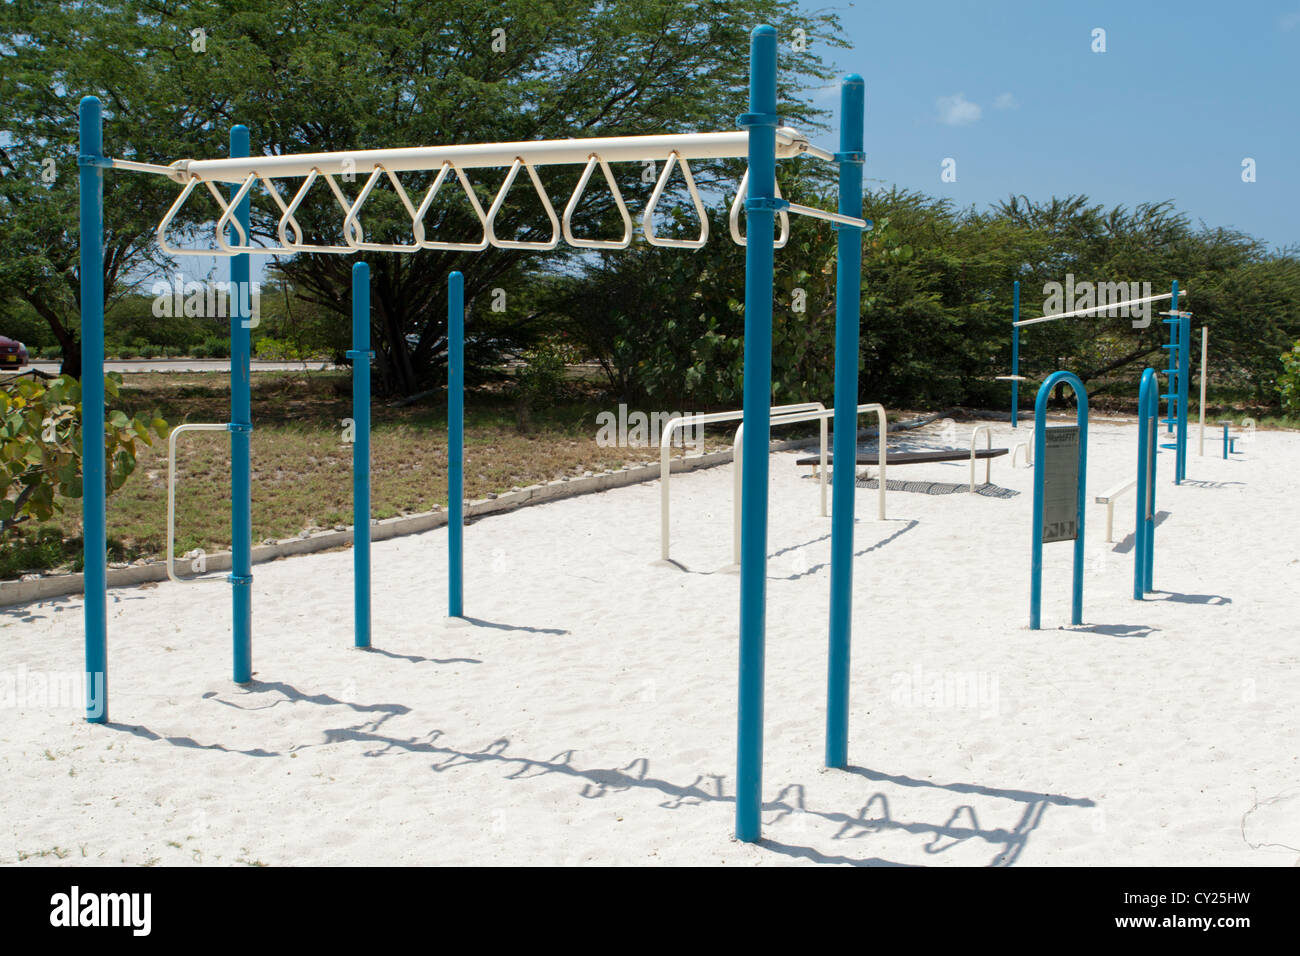 Outdoor exercise equipment - Stock Image